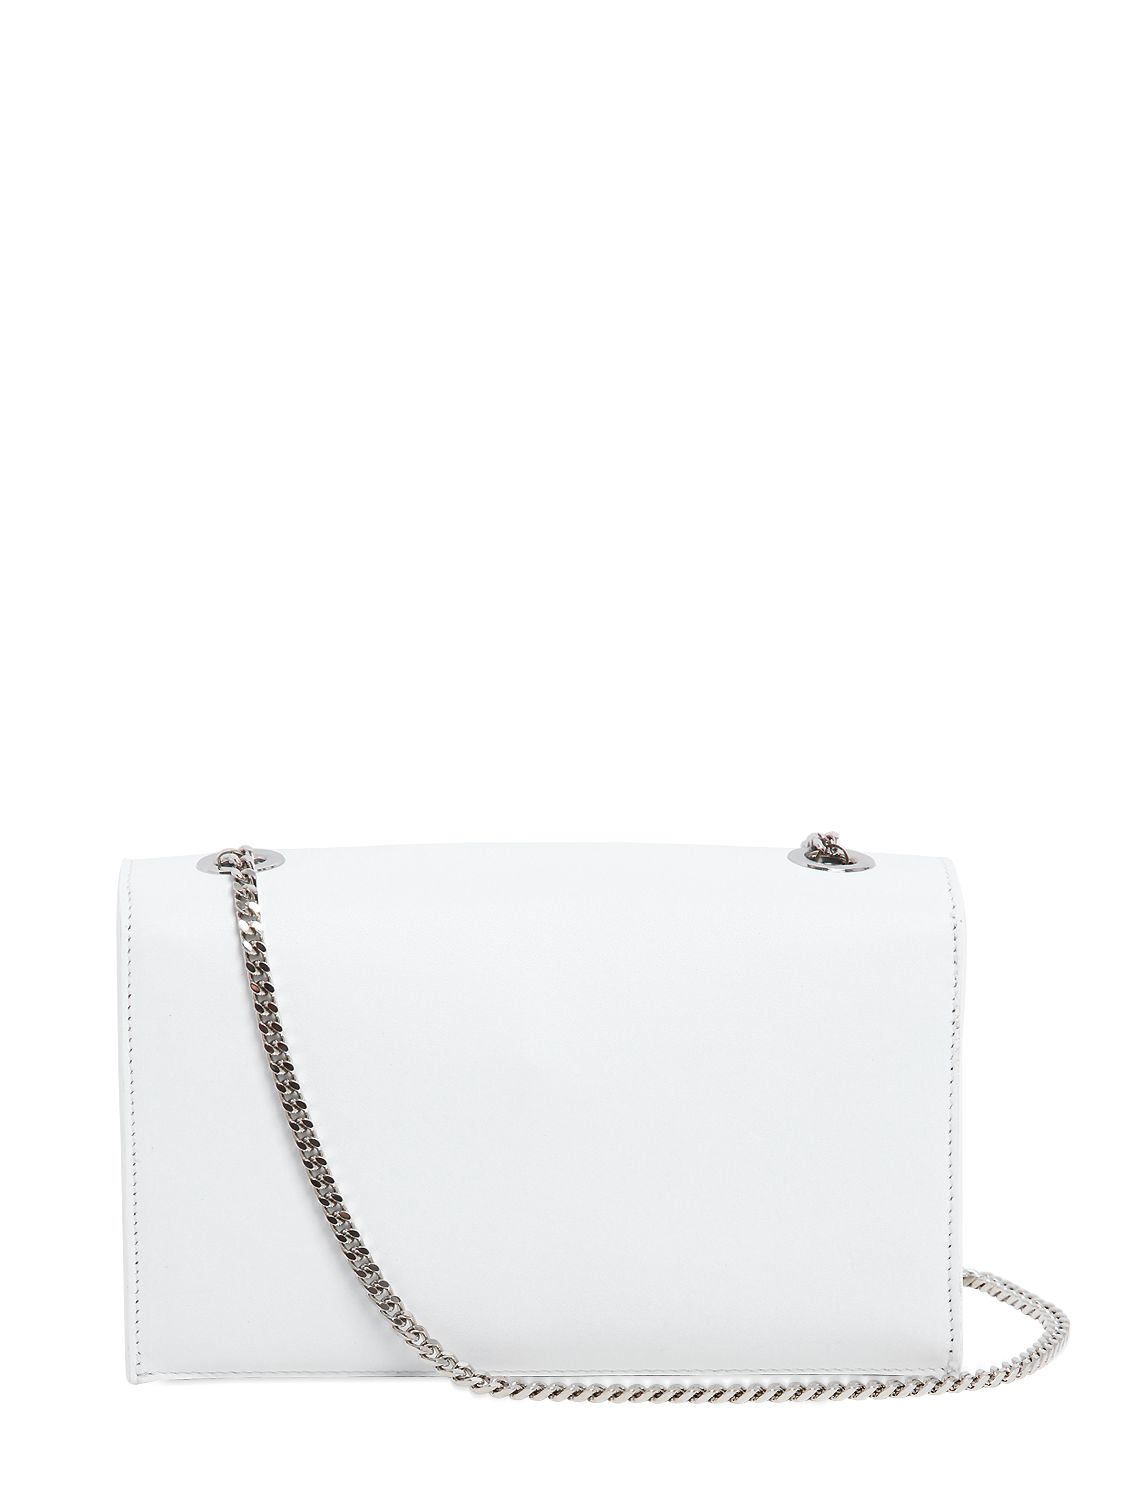 Versus Small Lion Head Leather Shoulder Bag in White | Lyst